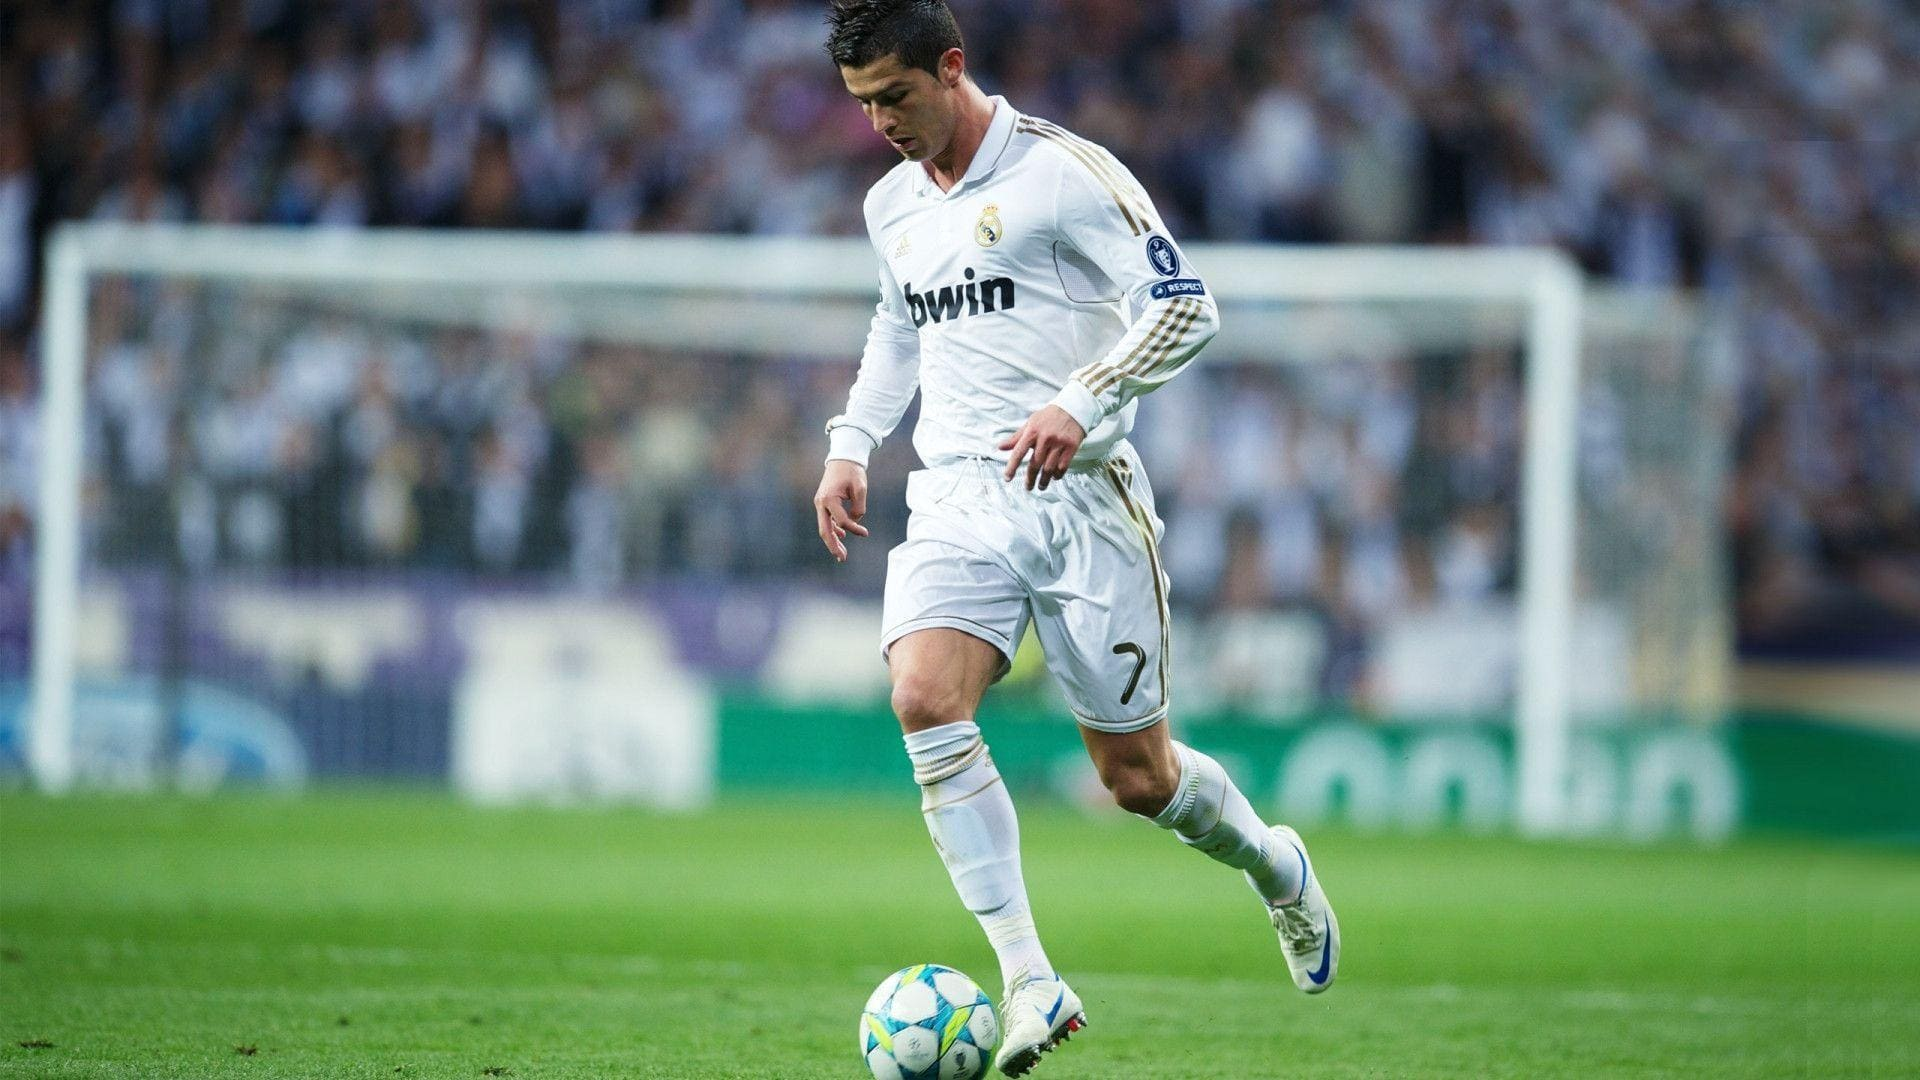 cristiano ronaldo computer background